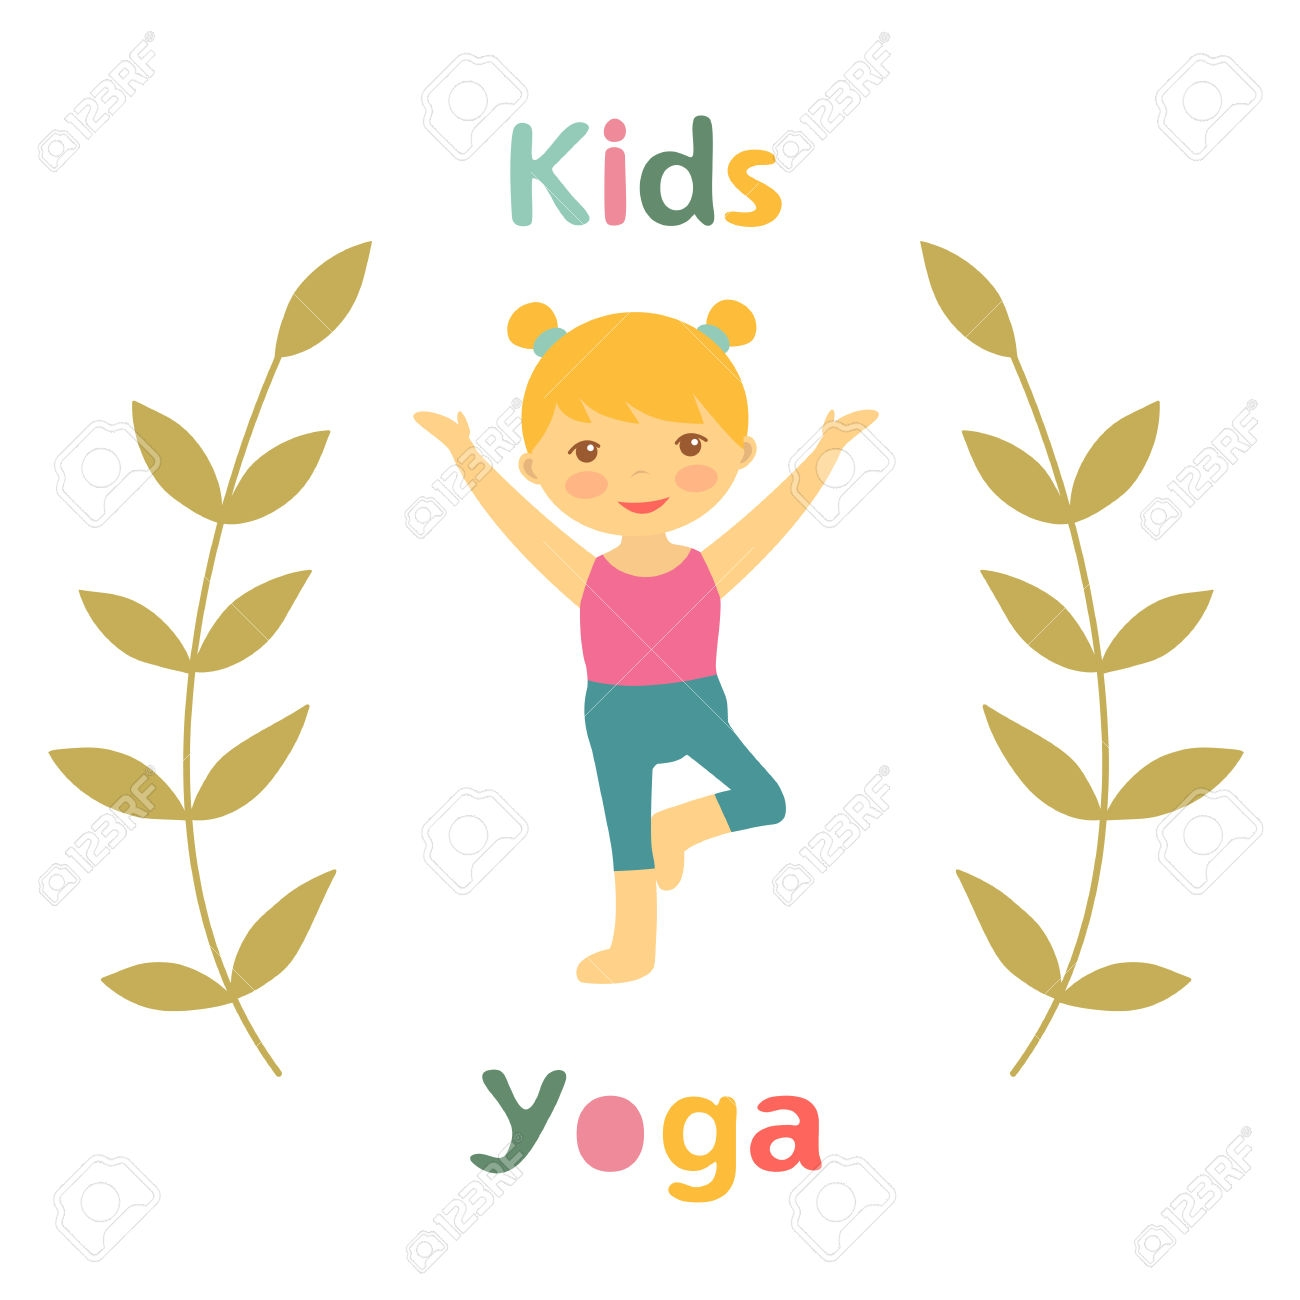 1740442934 39569112 Cute Yoga Kids Card With Little